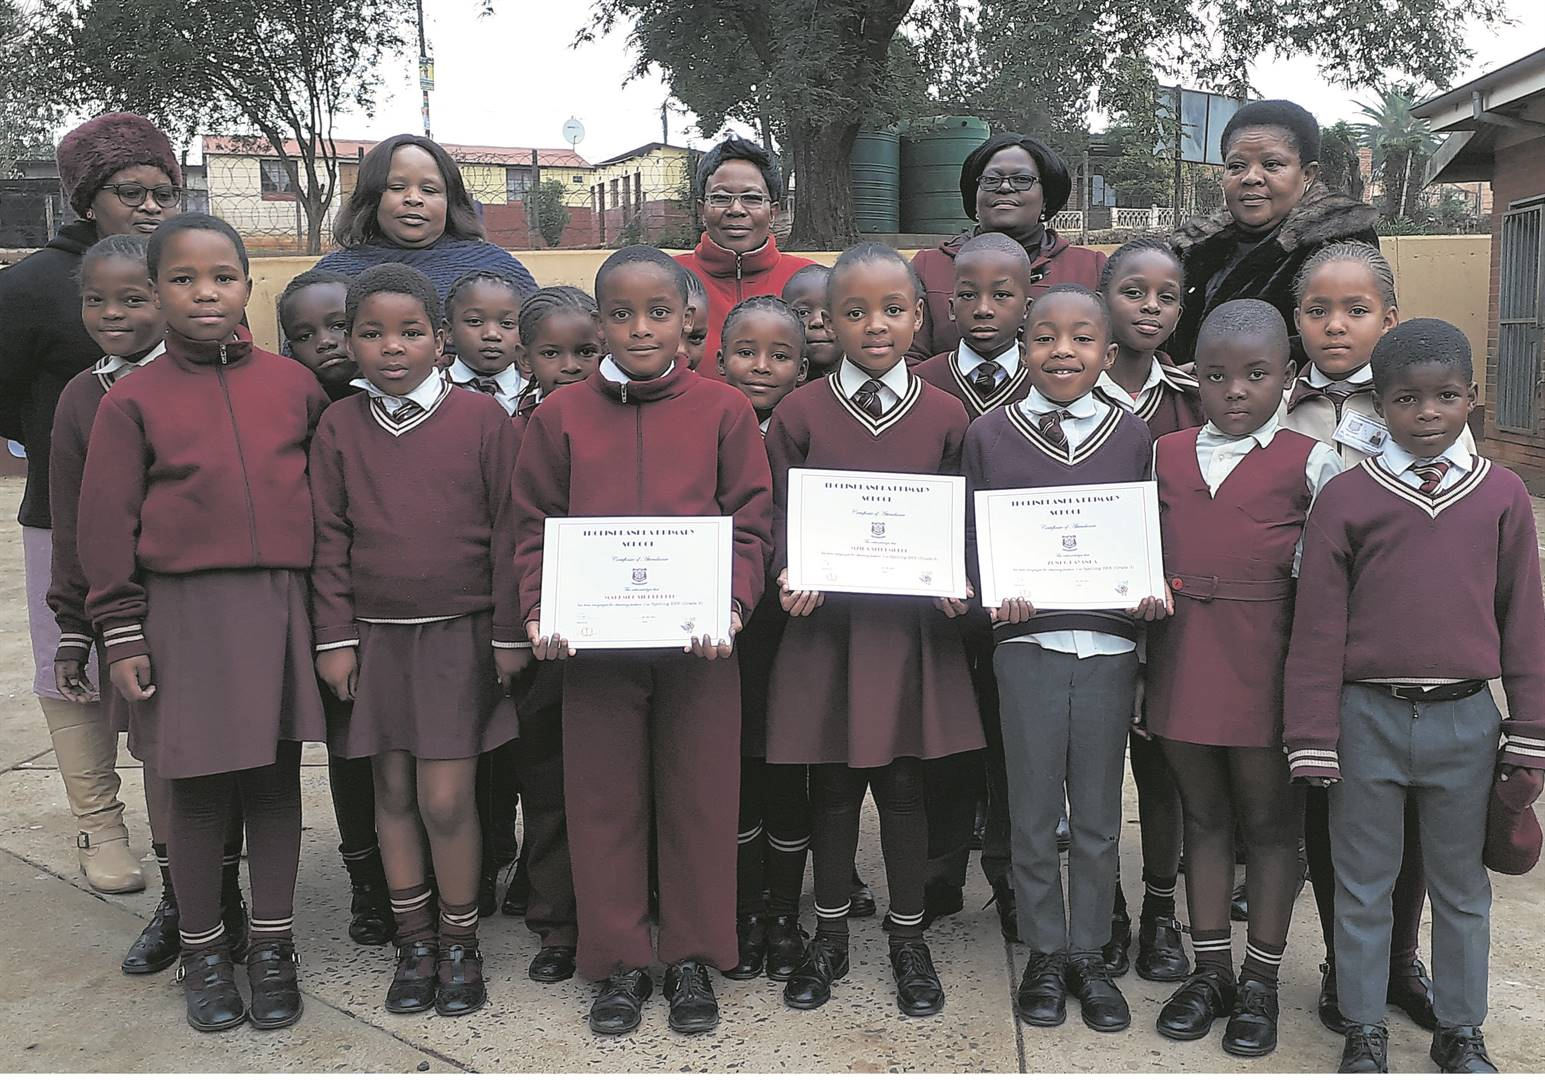 photo: suppliedTeachers from Tholinhlanhla Primary Schoool (back, from left) N.W. Luthuli, B.M.Z. Mthembu, N.P. Hlatshwayo, L.B. Mkhize and N.R. Ndlovu, with pupils who took part in the Spelling Bee.